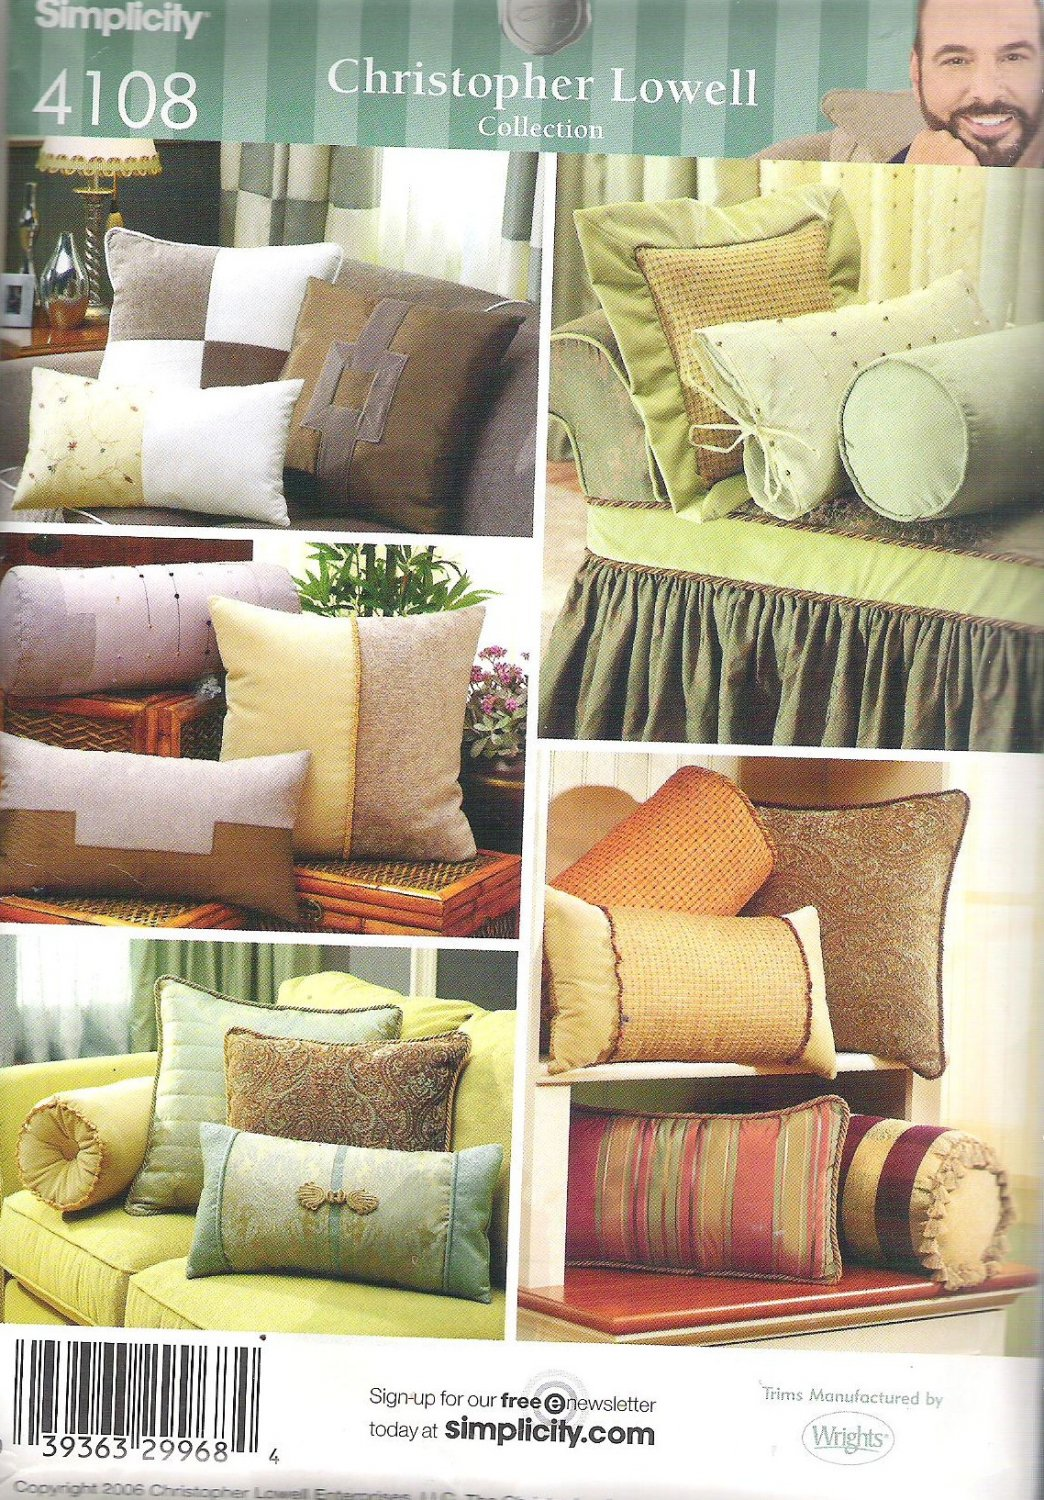 2006 Simplicity 4108 Pattern Square Rectange Bolster Quilted Pillows Uncut